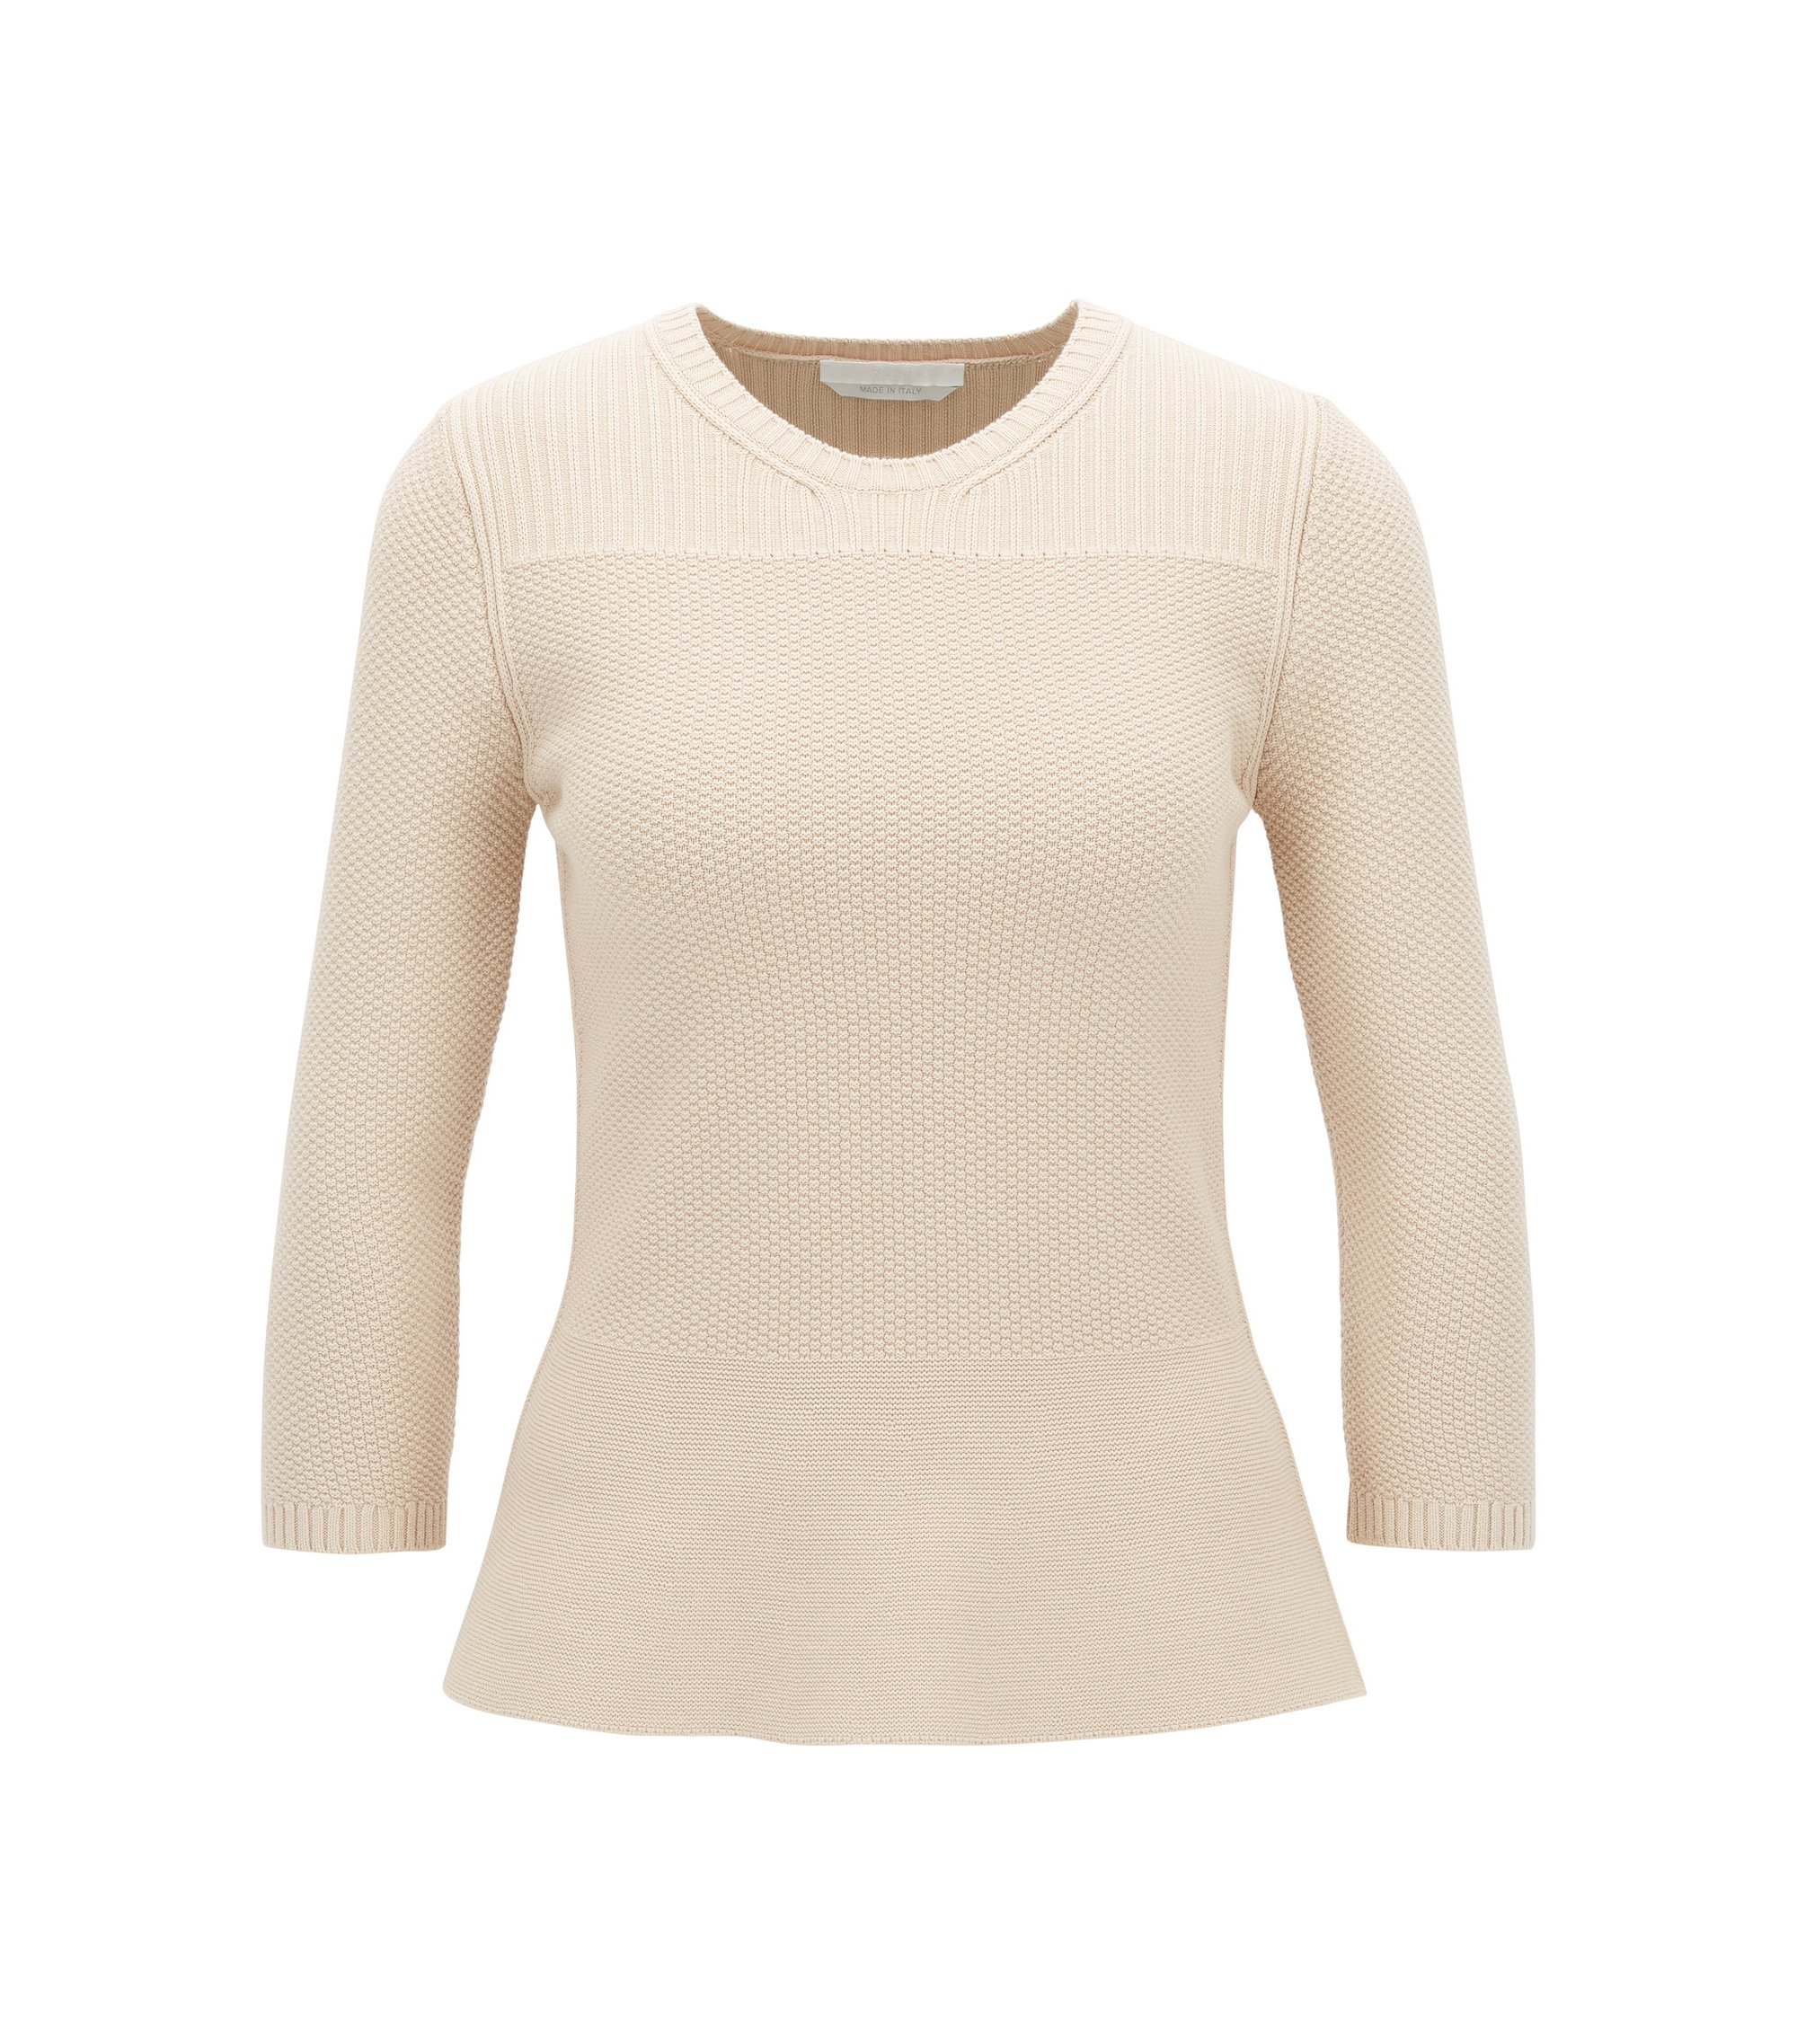 Peplum sweater with three-quarter-length sleeves, Beige